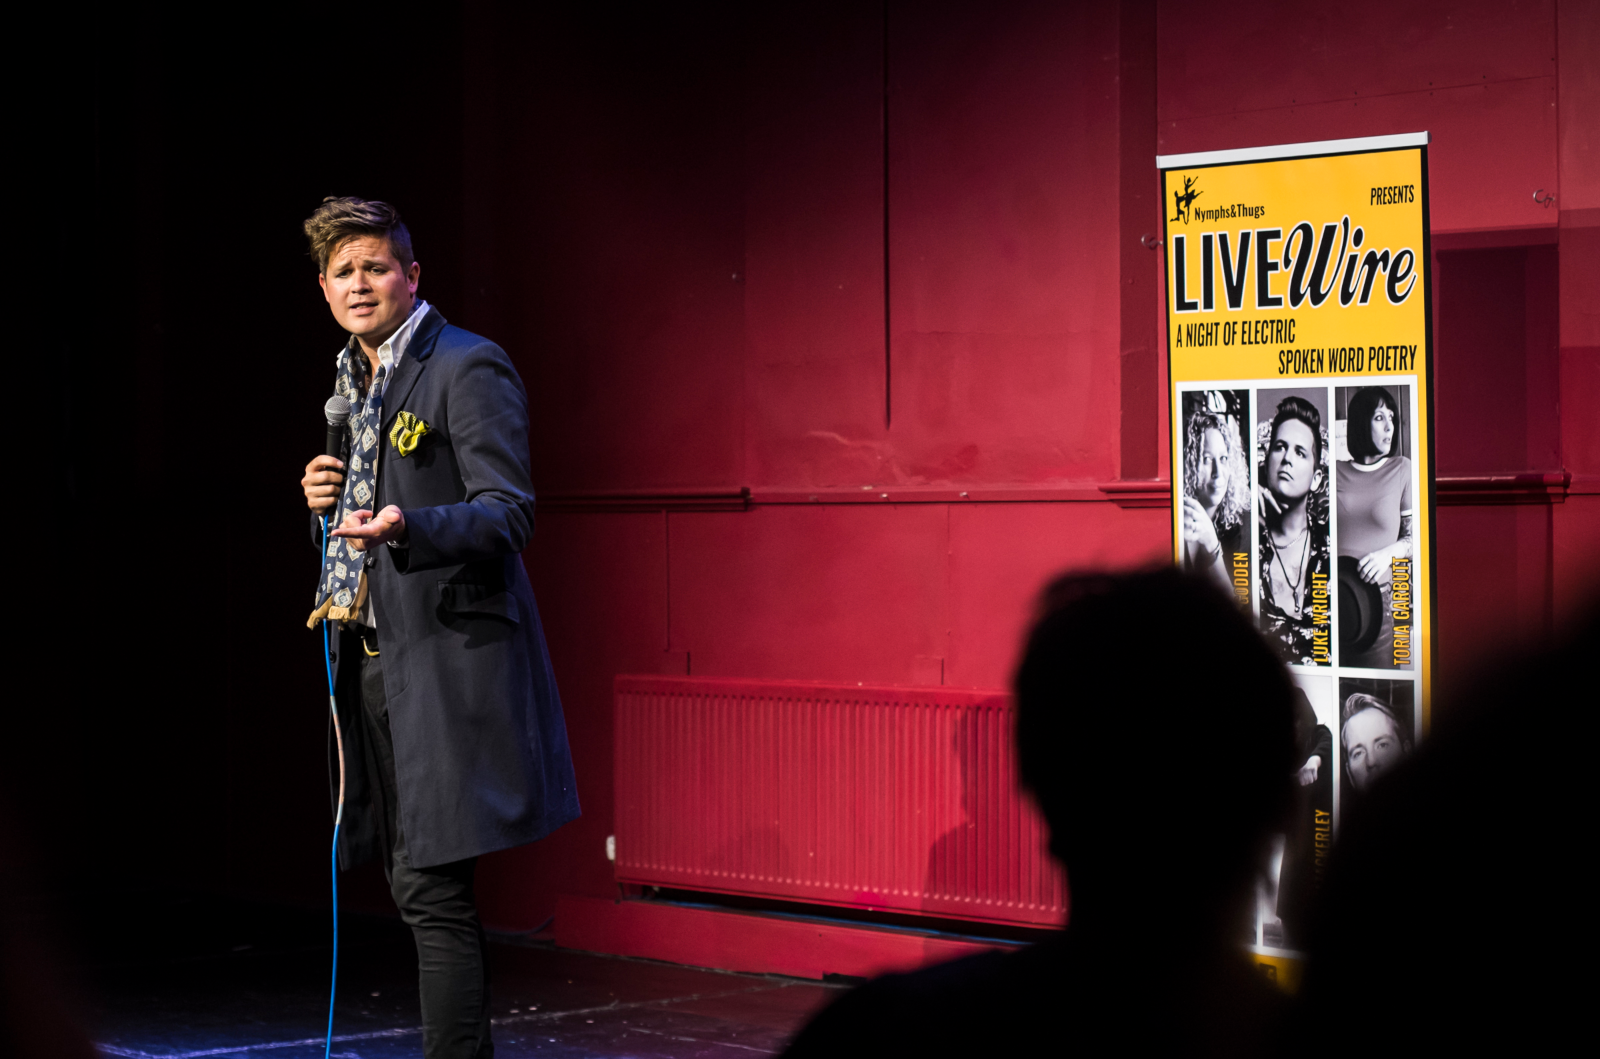 Nymphs & Thugs | LIVEwire Manchester | Luke Wright